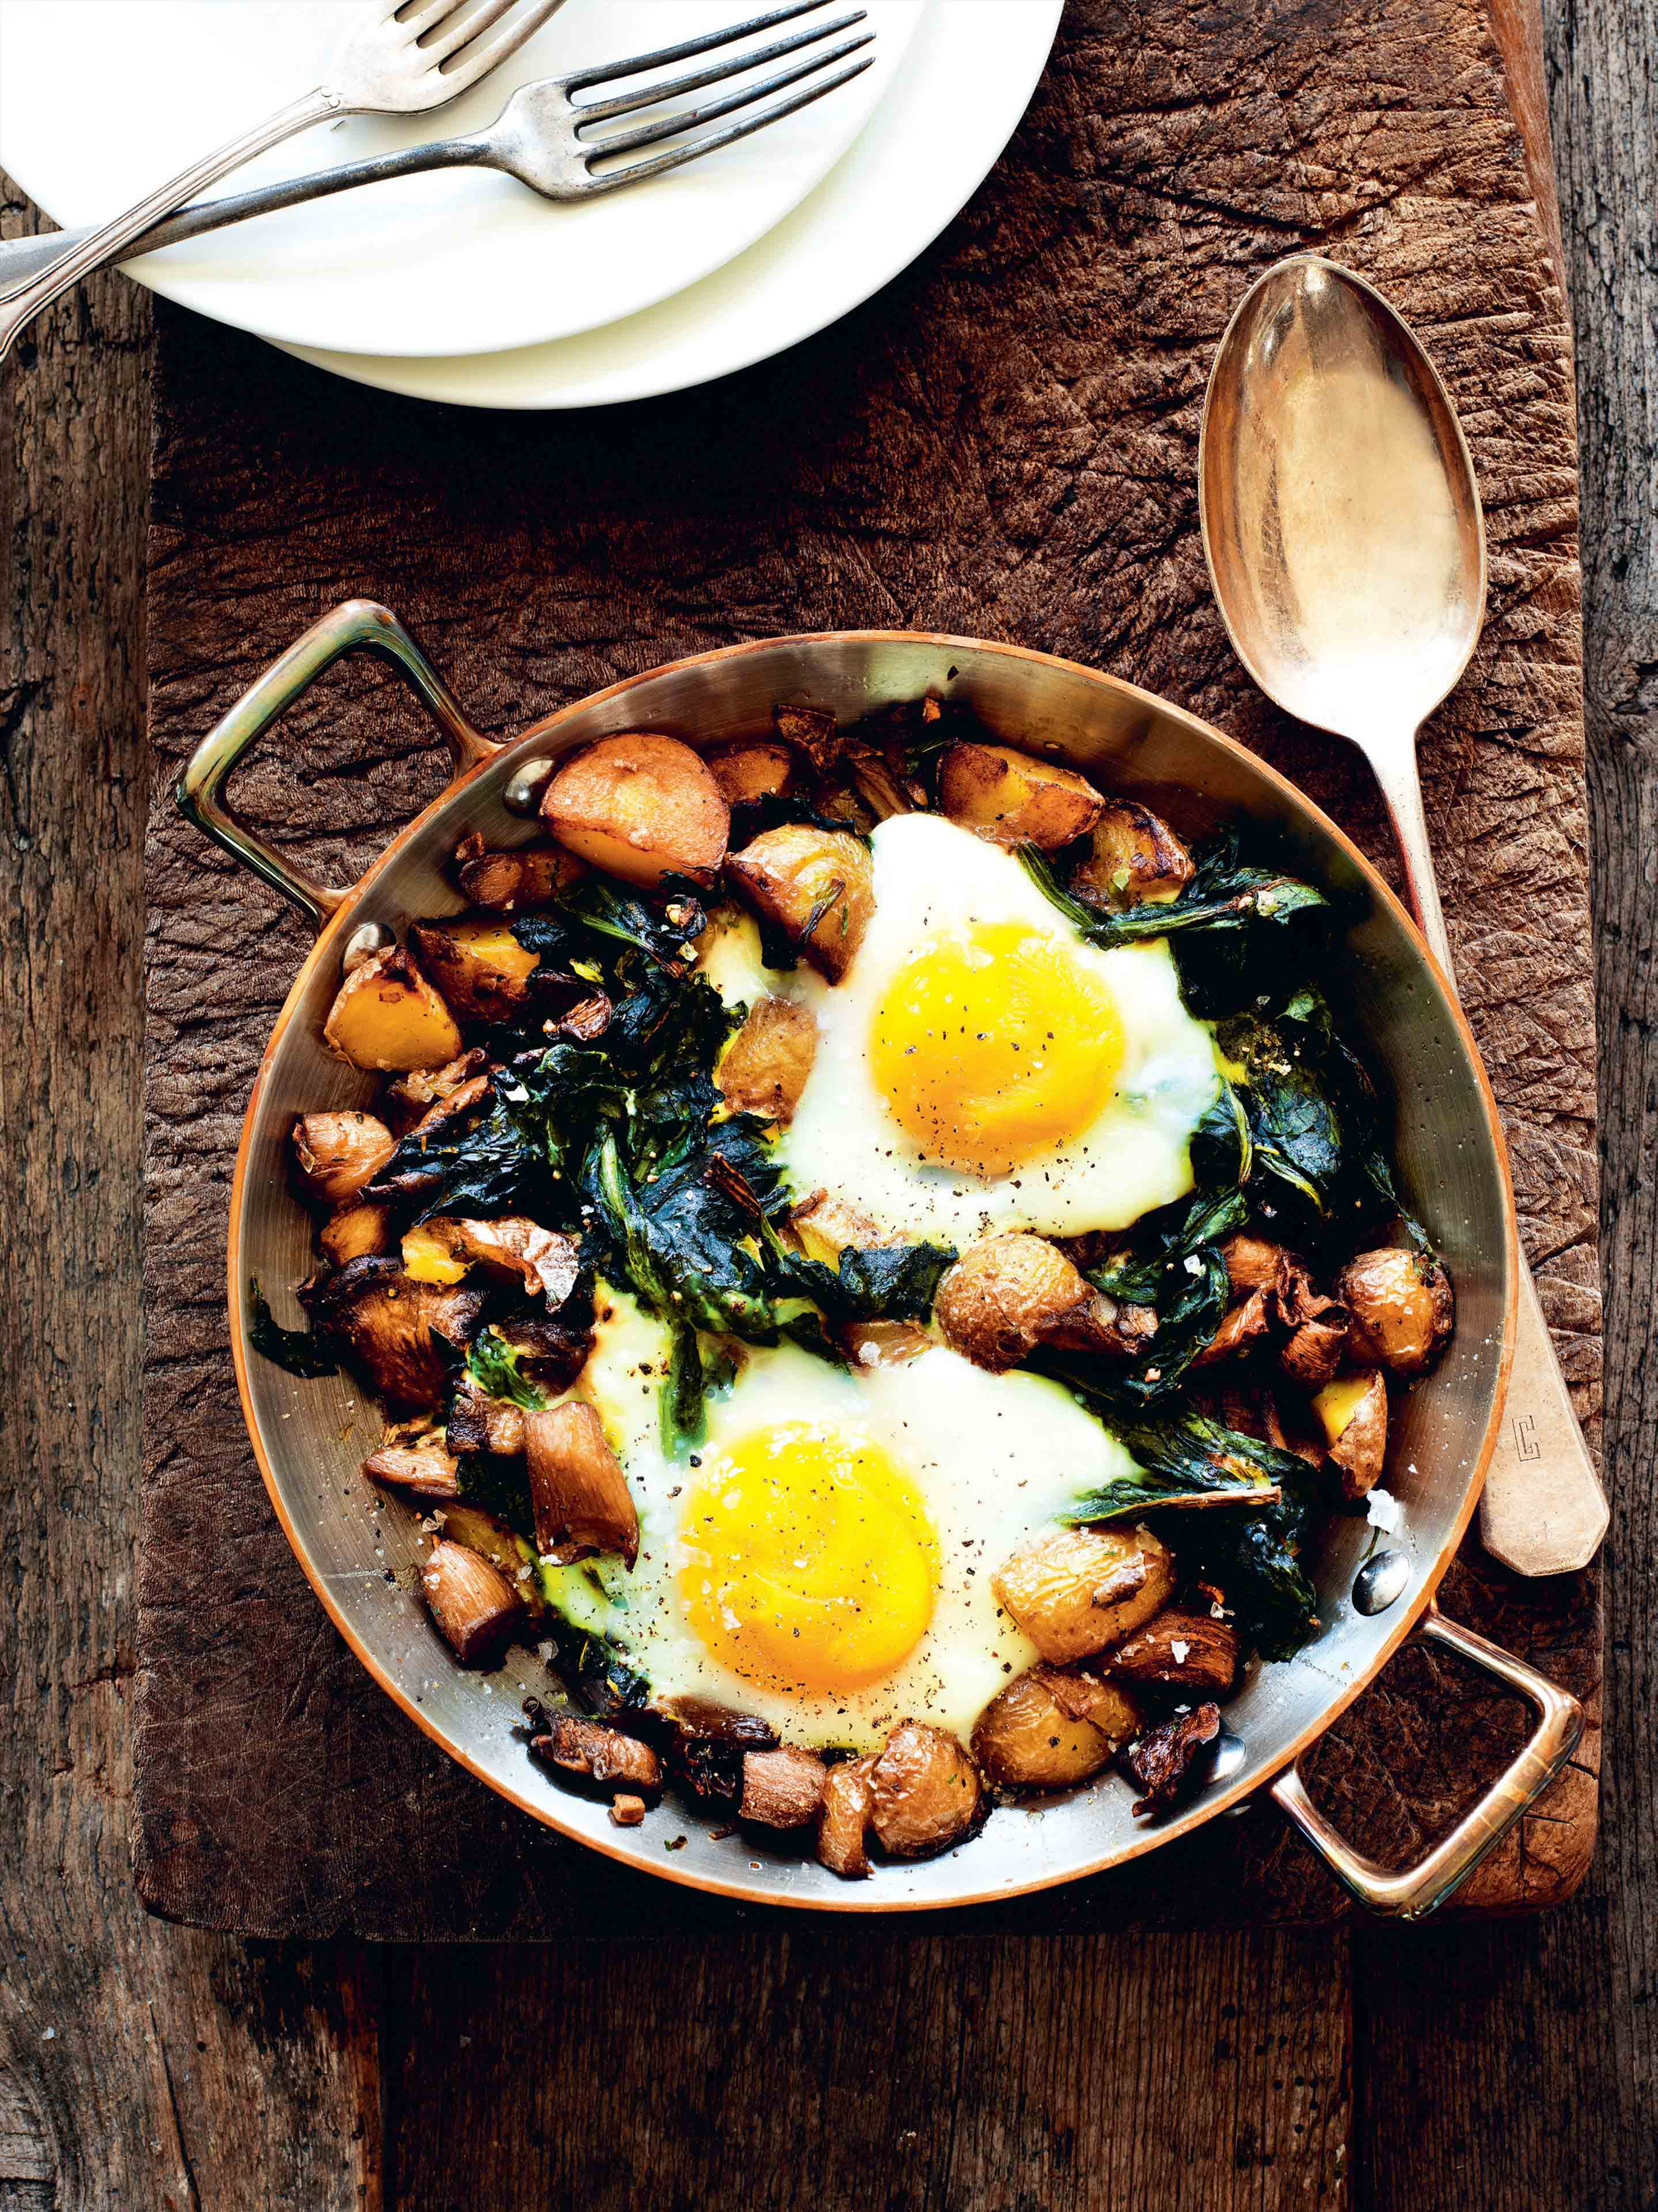 Spinach and potatoes baked with eggs